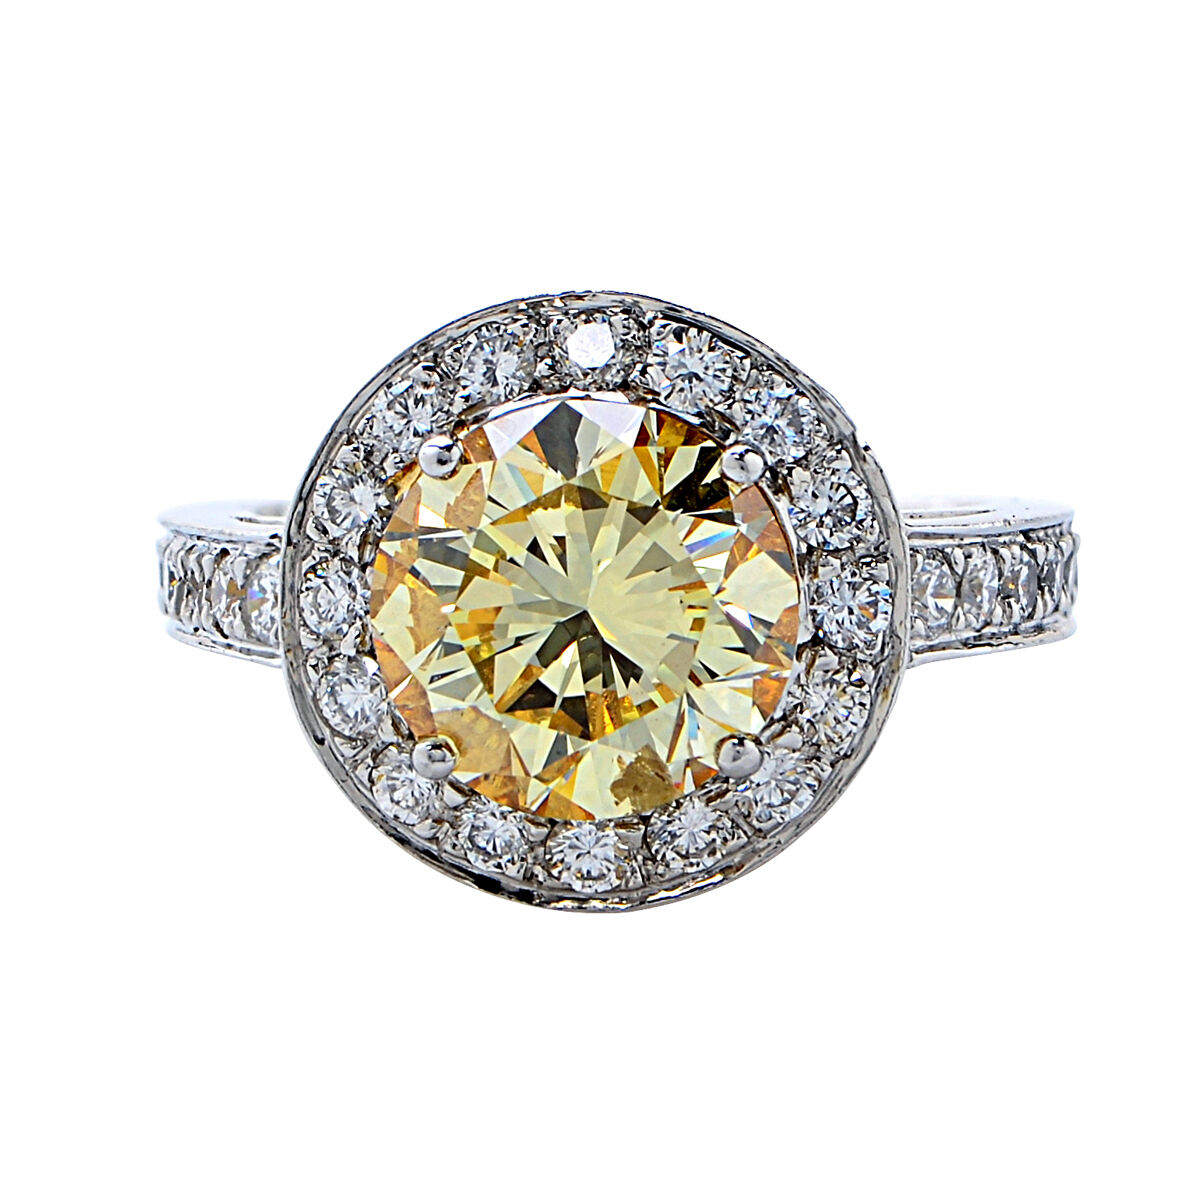 3.36ct GIA Graded Natural Fancy Yellow Diamond Engagement Ring